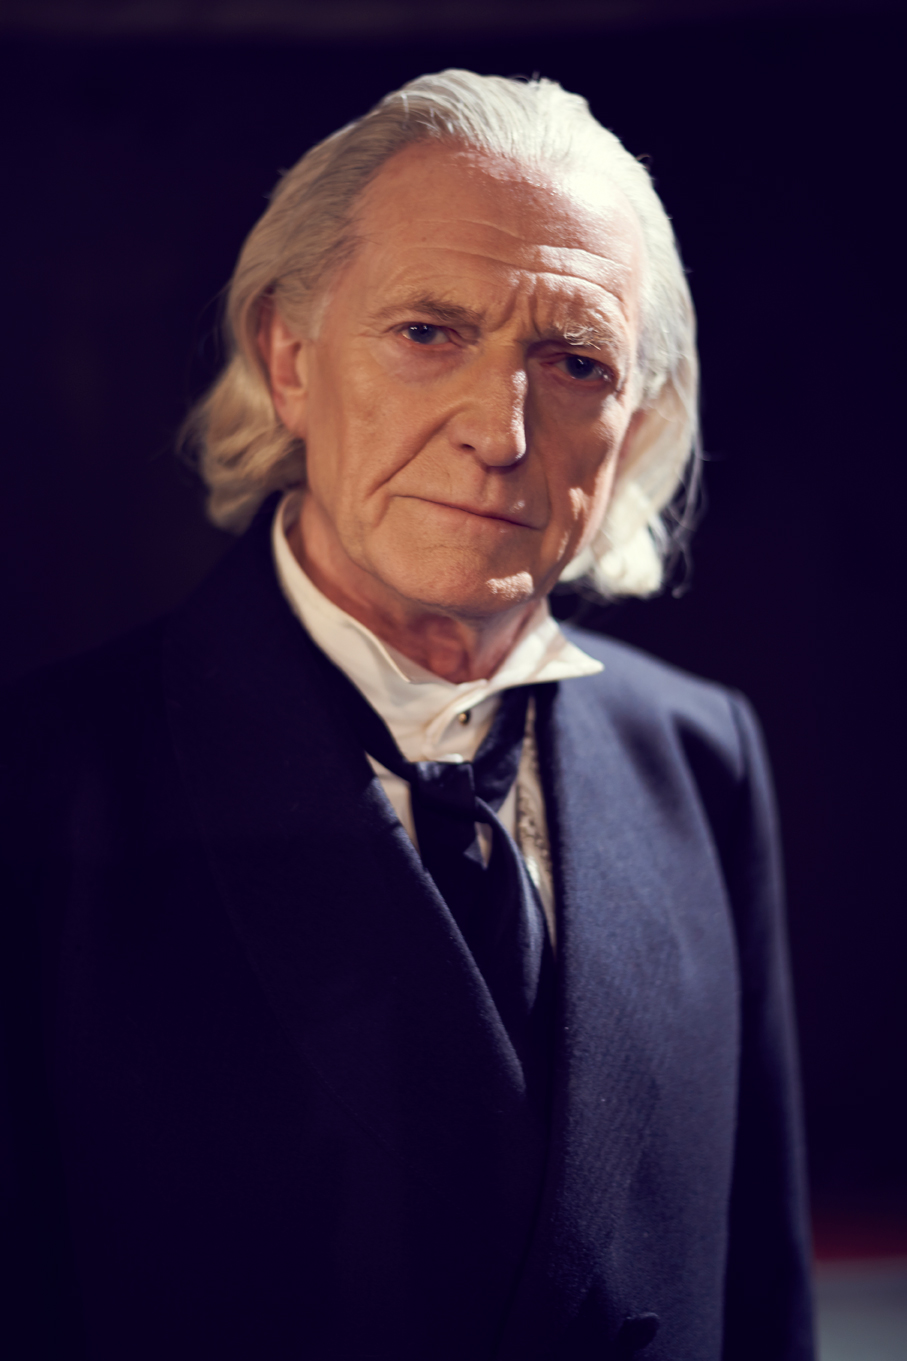 David Bradley as William Hartnell in 'An Adventure in Space and Time' (Photo: BBC AMERICA)